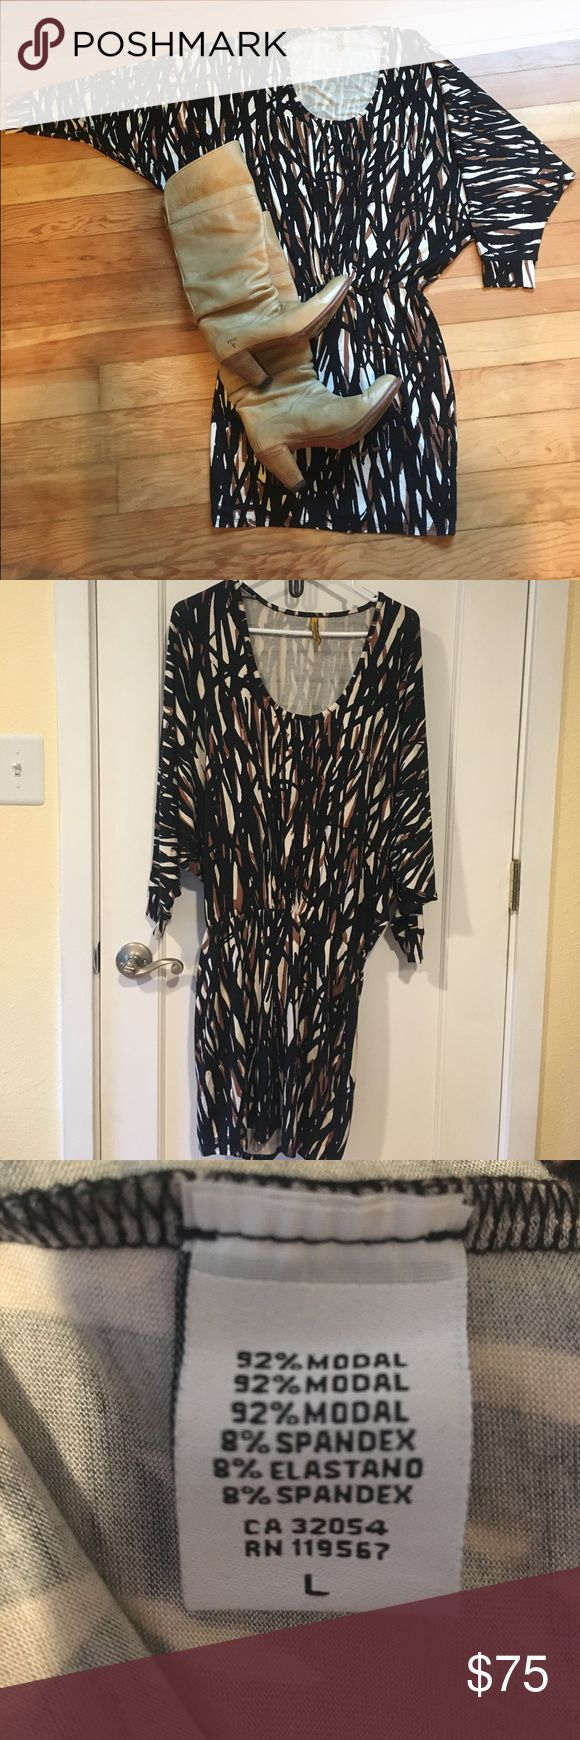 NWOT Rachel Pally dress Large NWOT Rachel Pally dress in size large.  Versatile and stylish for any occasion. Make Offer! Rachel Pally Dresses